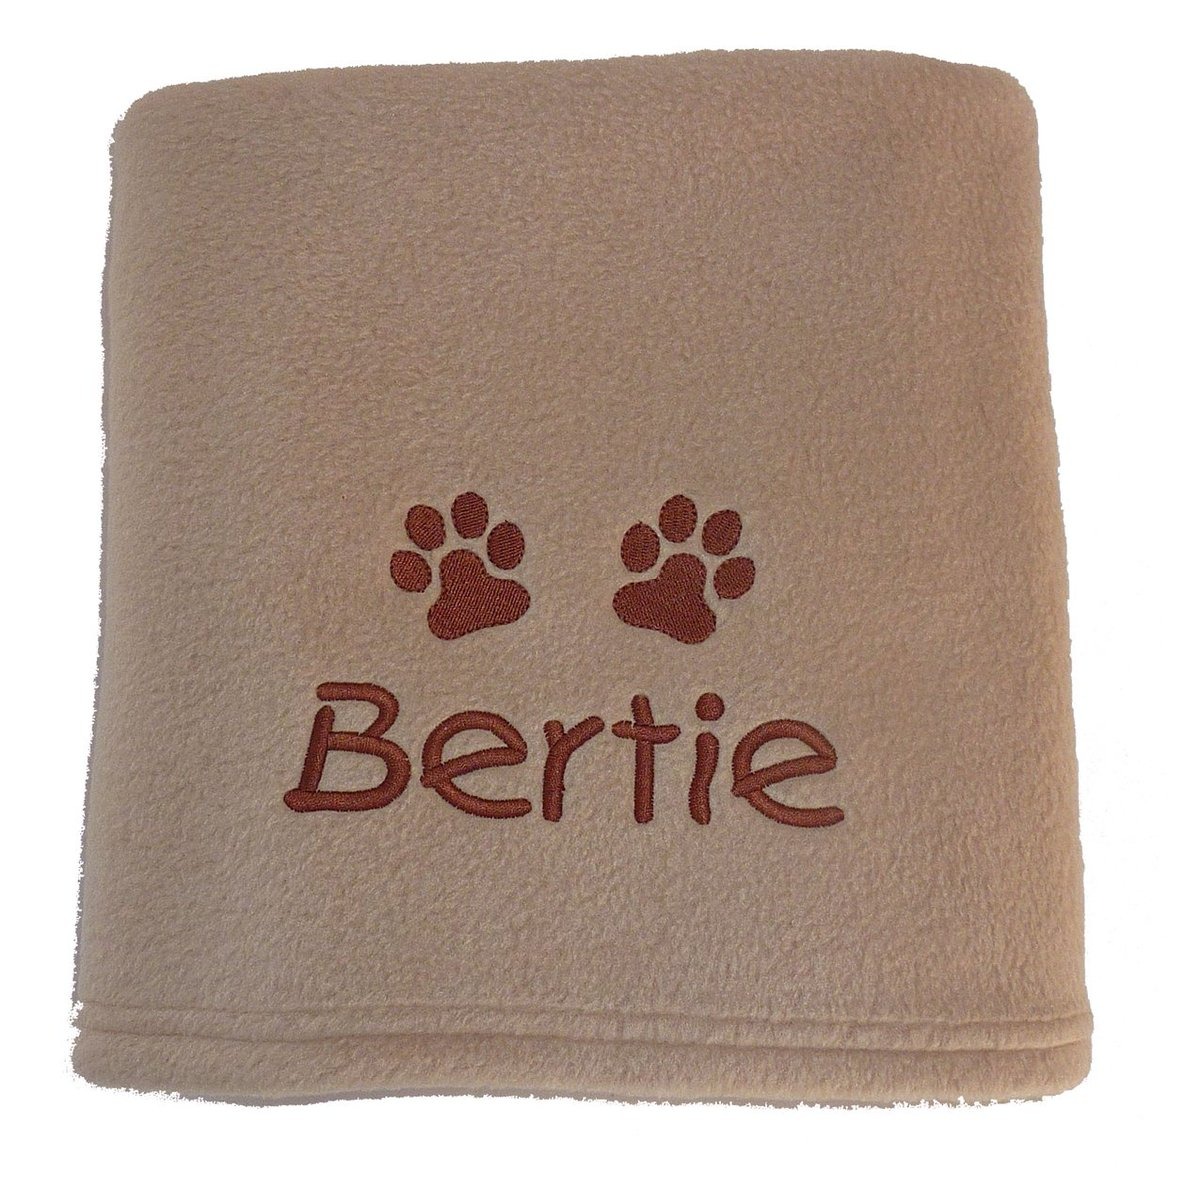 #twittersisters Treat your pooch to their very own #personalised #blanket or towel. Great gift idea too  https://www. littlepooch.co.uk/dog-blankets.h tml &nbsp; … <br>http://pic.twitter.com/gNrrrEcz0z